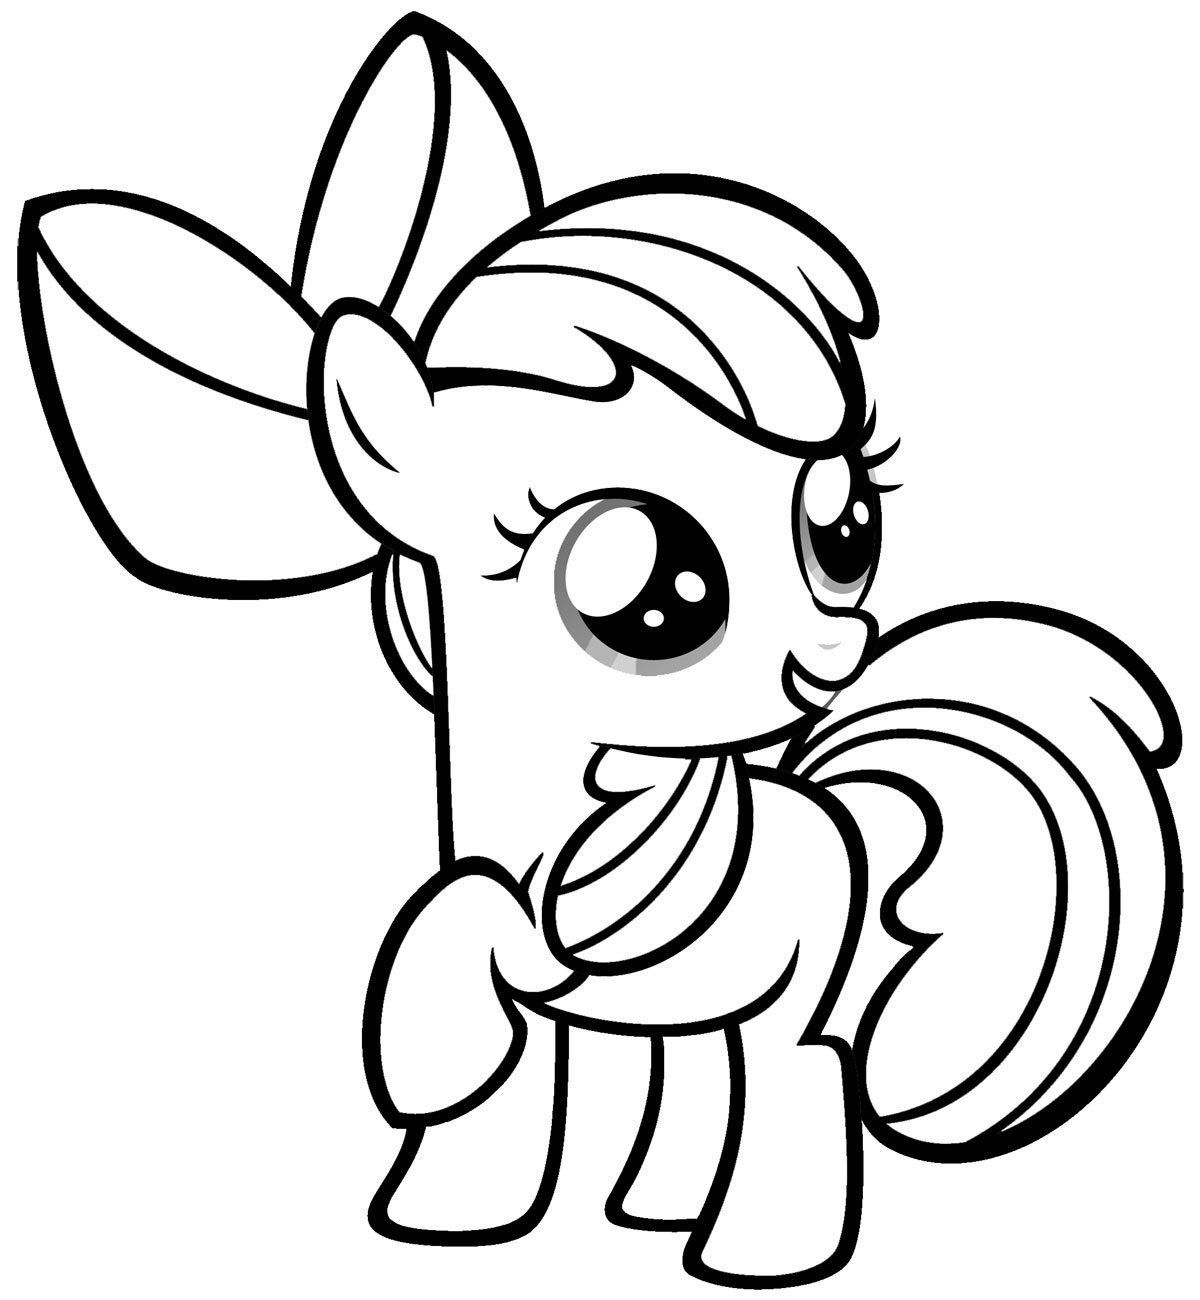 my-little-pony coloring pages printable,printable,coloring pages